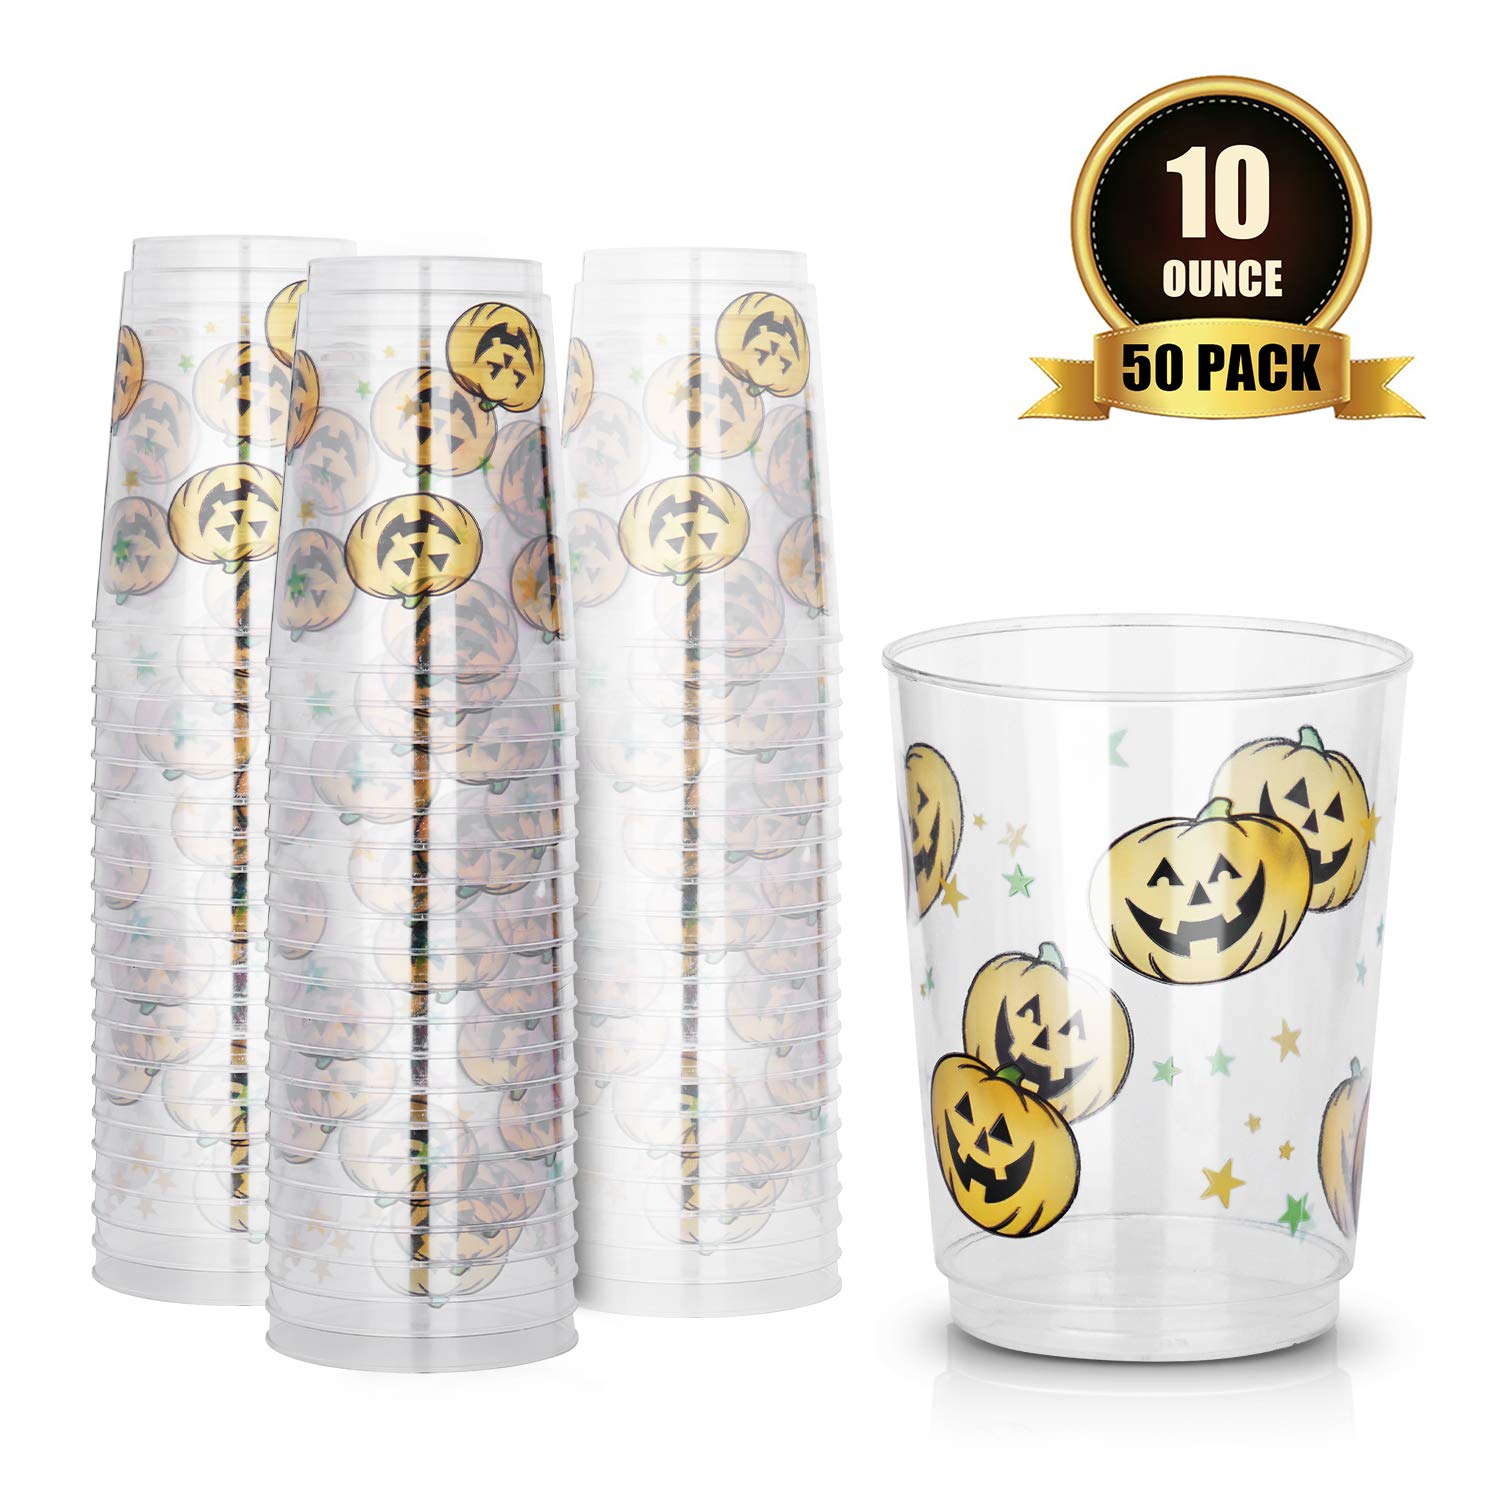 TOROTON 10oz Disposable Cups, 50 Pack Reusable & Recyclable Clear Plastic Wine Glasses for Halloween Christmas Party - Pumpkin Printing